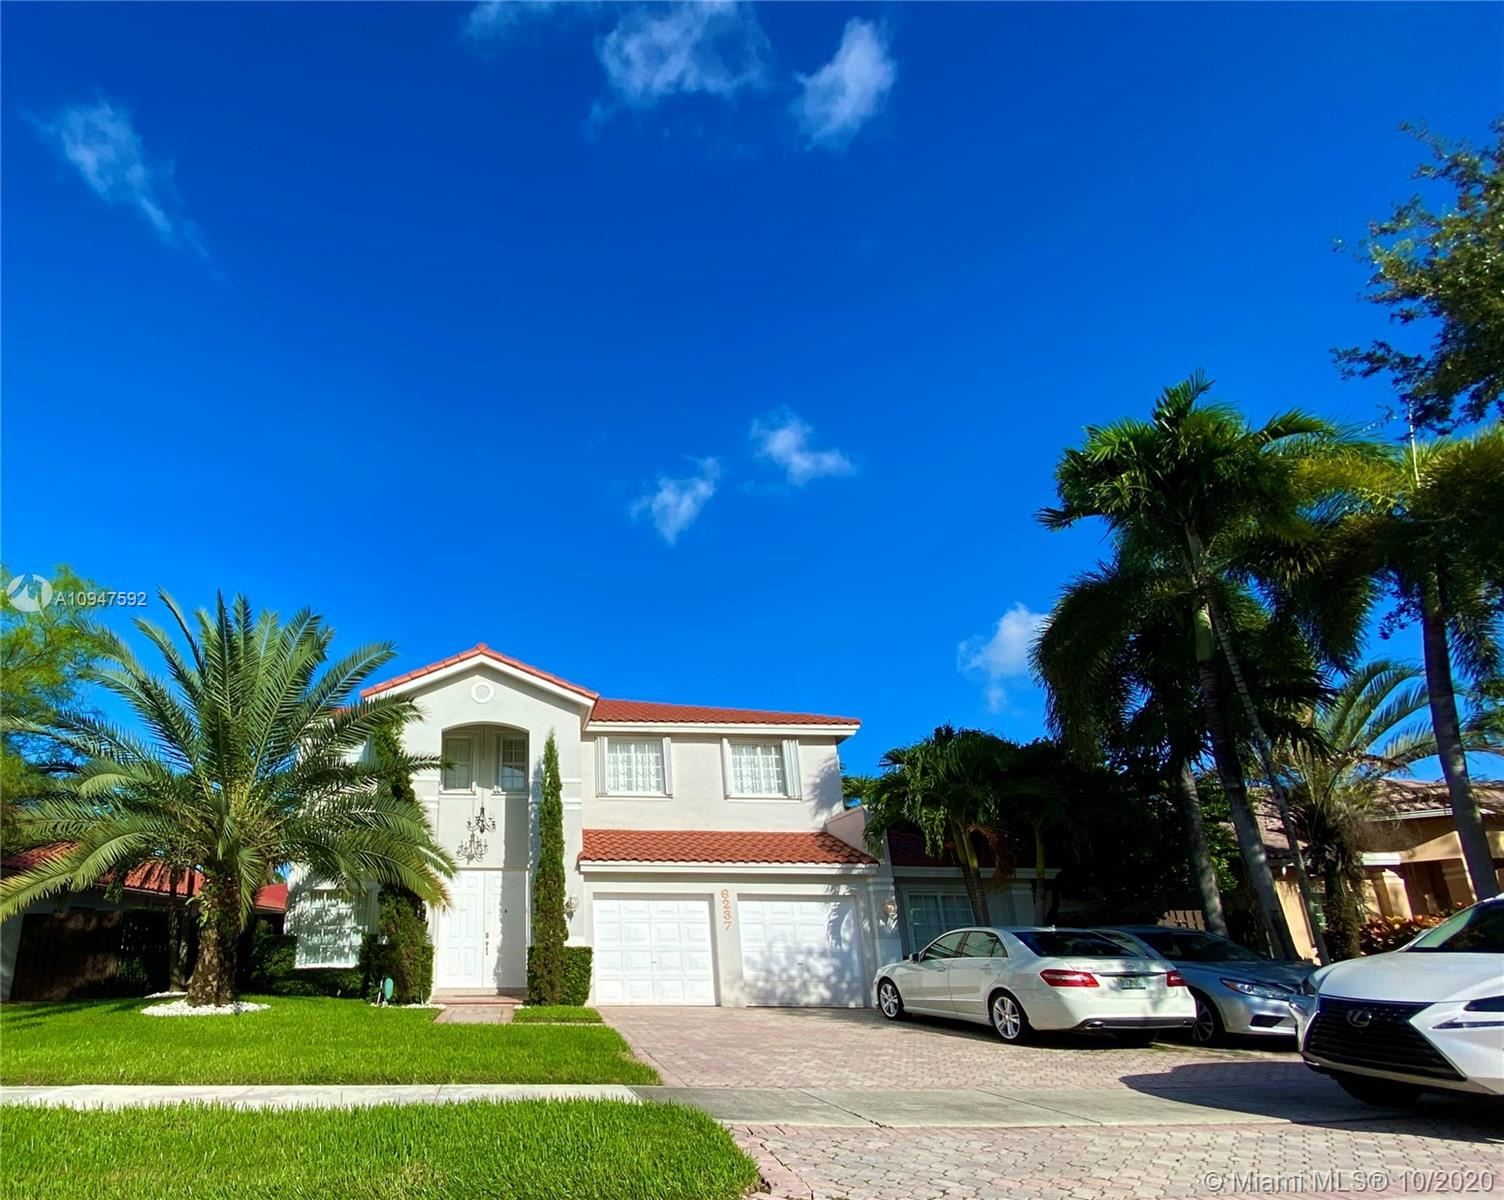 6237 NW 113th Pl, Doral, FL 33178 - #: A10947592